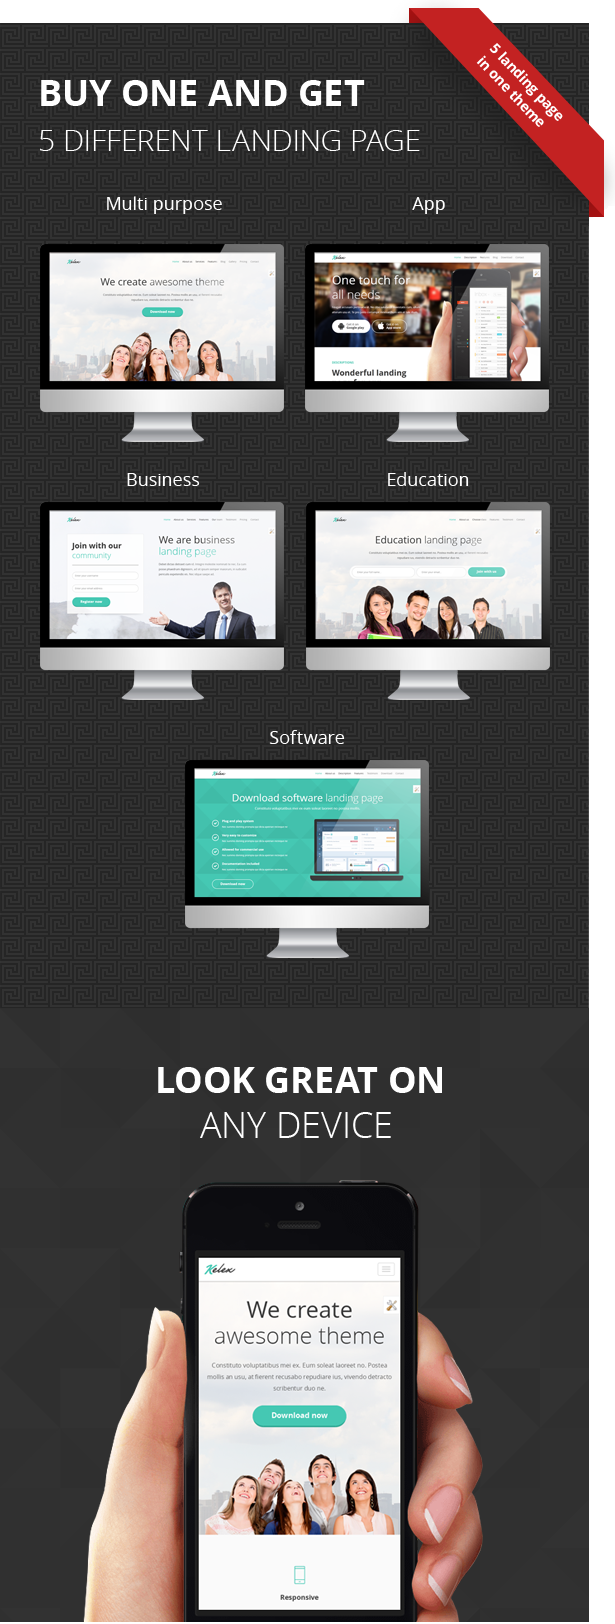 Kelex - Clean and Modern Landing Page Muse Template - 1